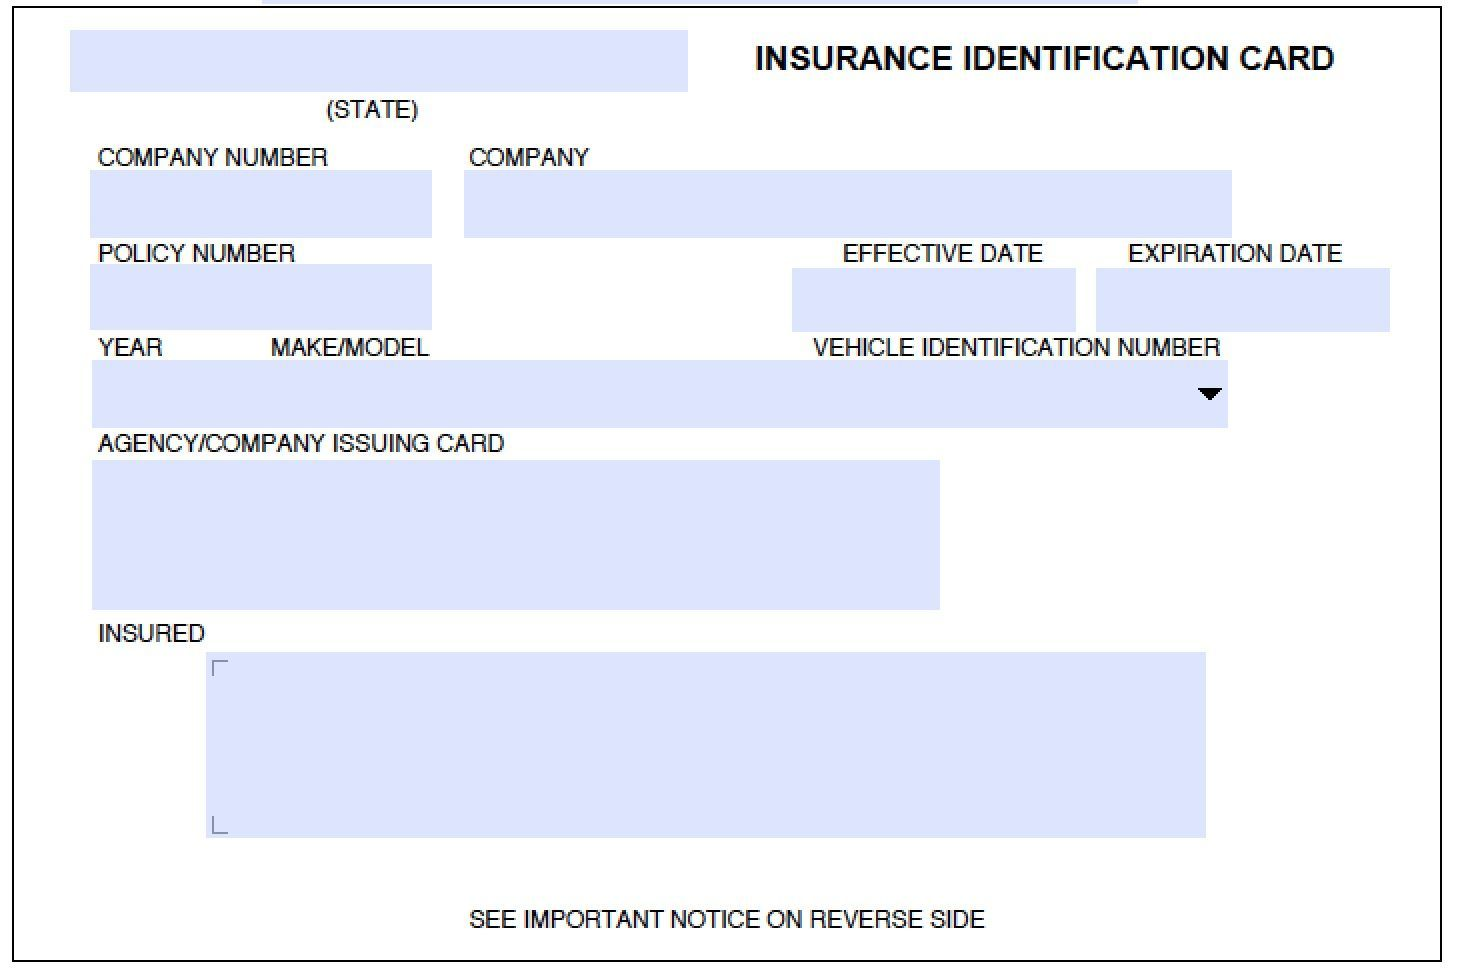 car insurance card template download  Auto Insurance Card Template Free Download - http://www.valery ...